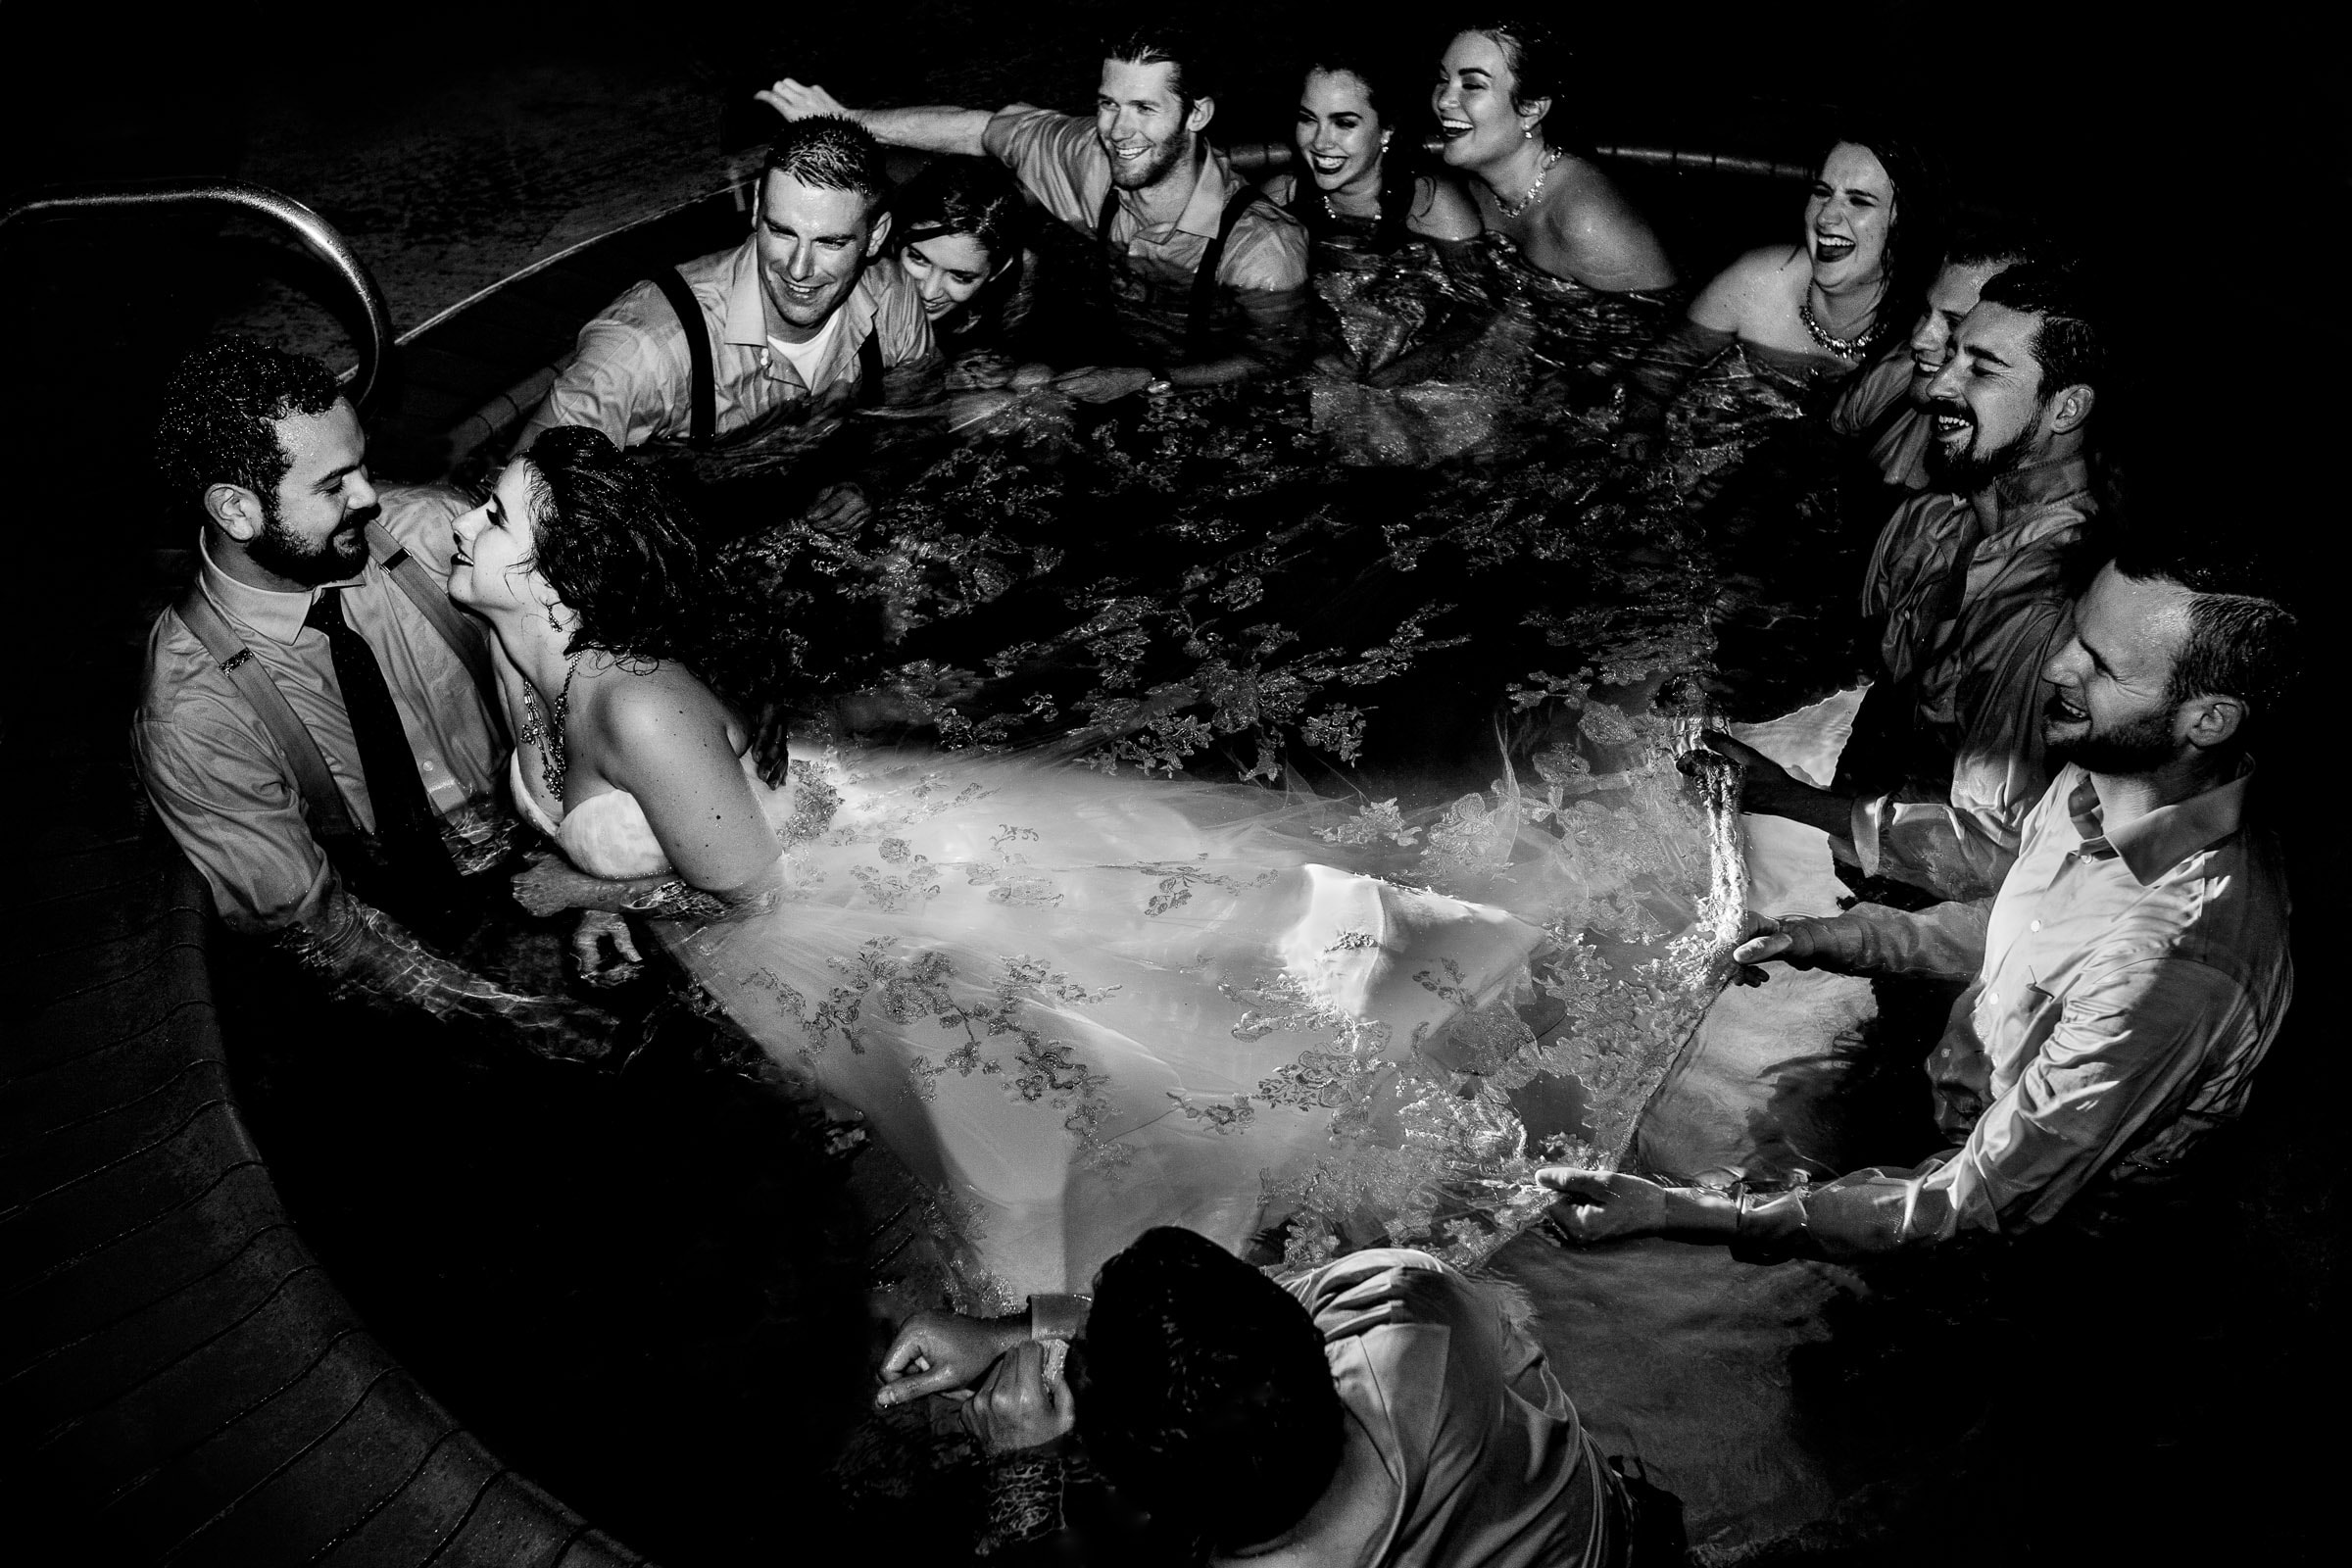 the worlds best wedding photos award of bride and groom in hot tub late night party at their Resort at the Mountain wedding on Mt Hood